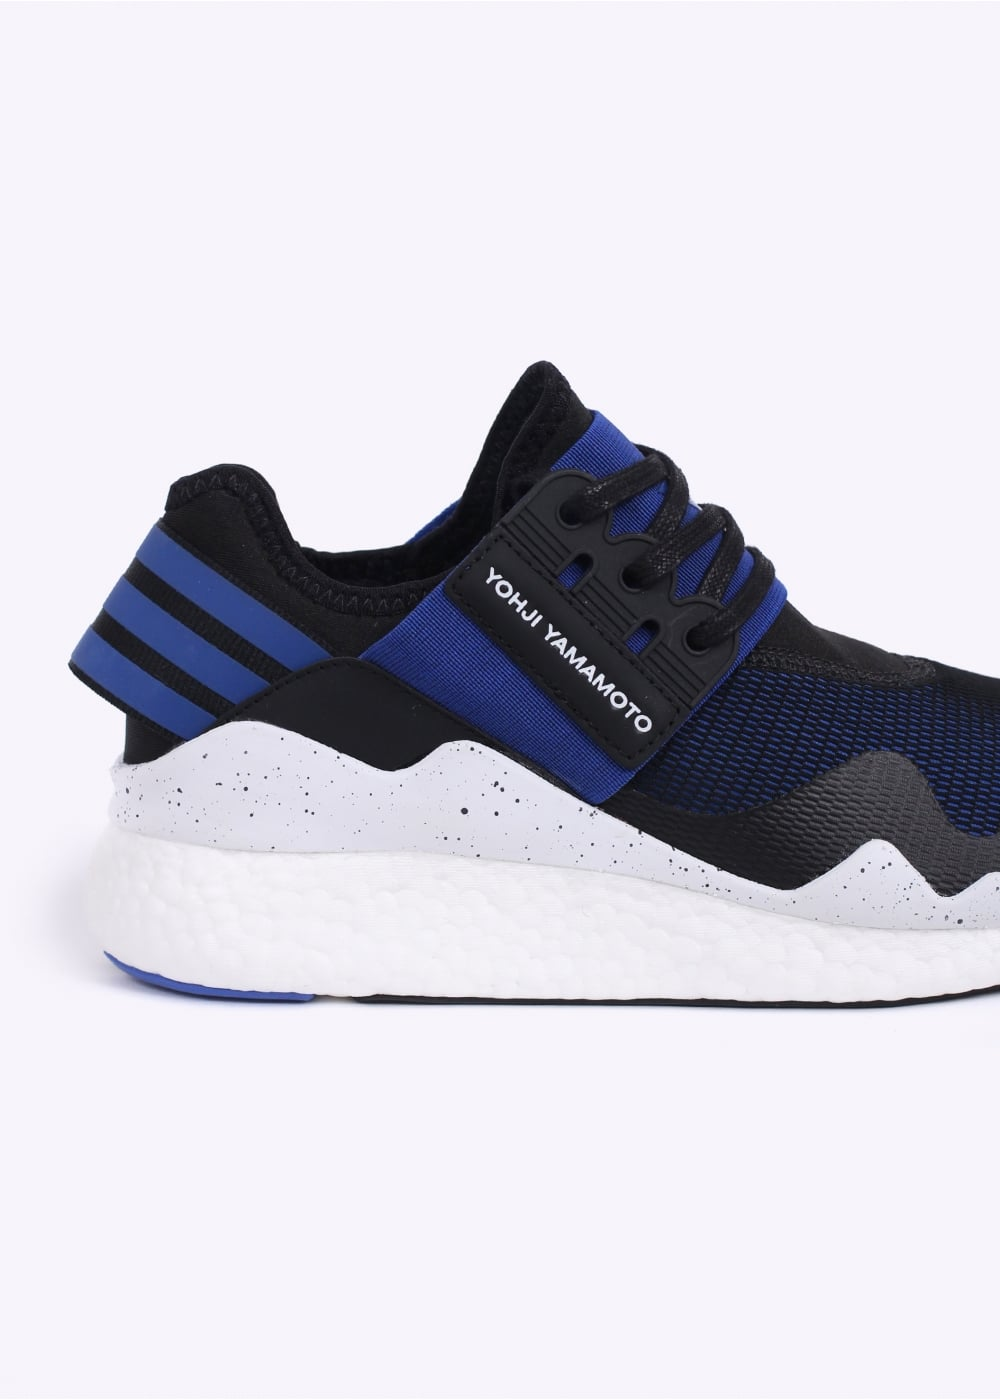 adidas y 3 retro boost electric blue. Black Bedroom Furniture Sets. Home Design Ideas